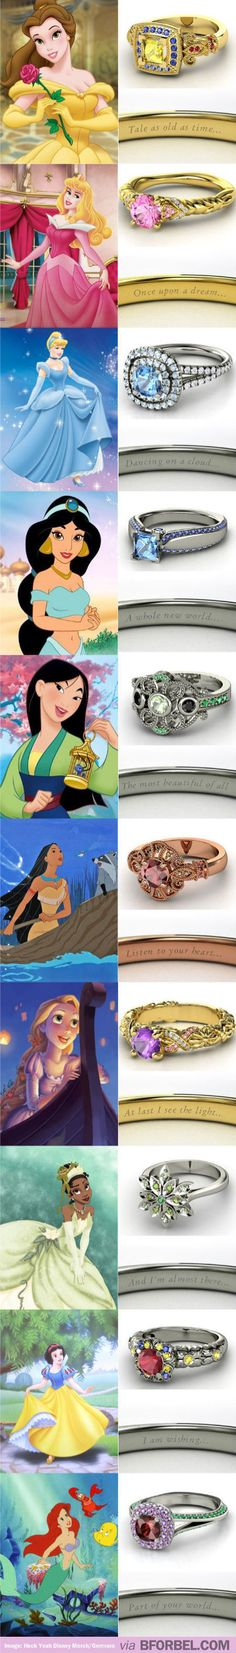 Disney Princess Inspired Wedding Rings… Love Cinderella's!